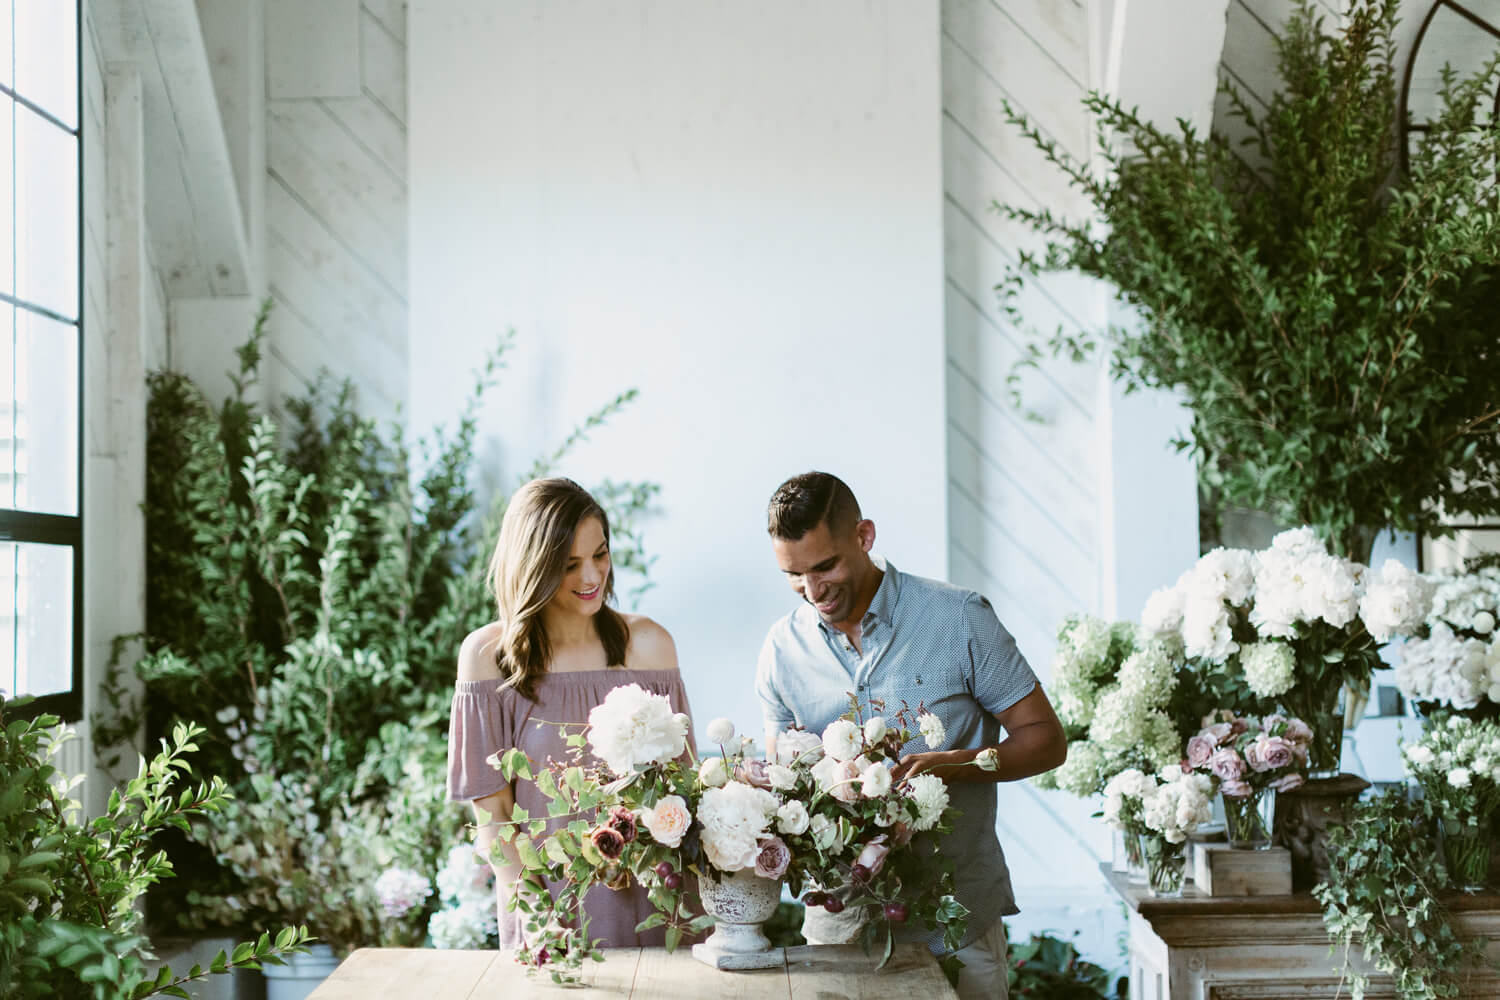 How to Run a Wedding Business